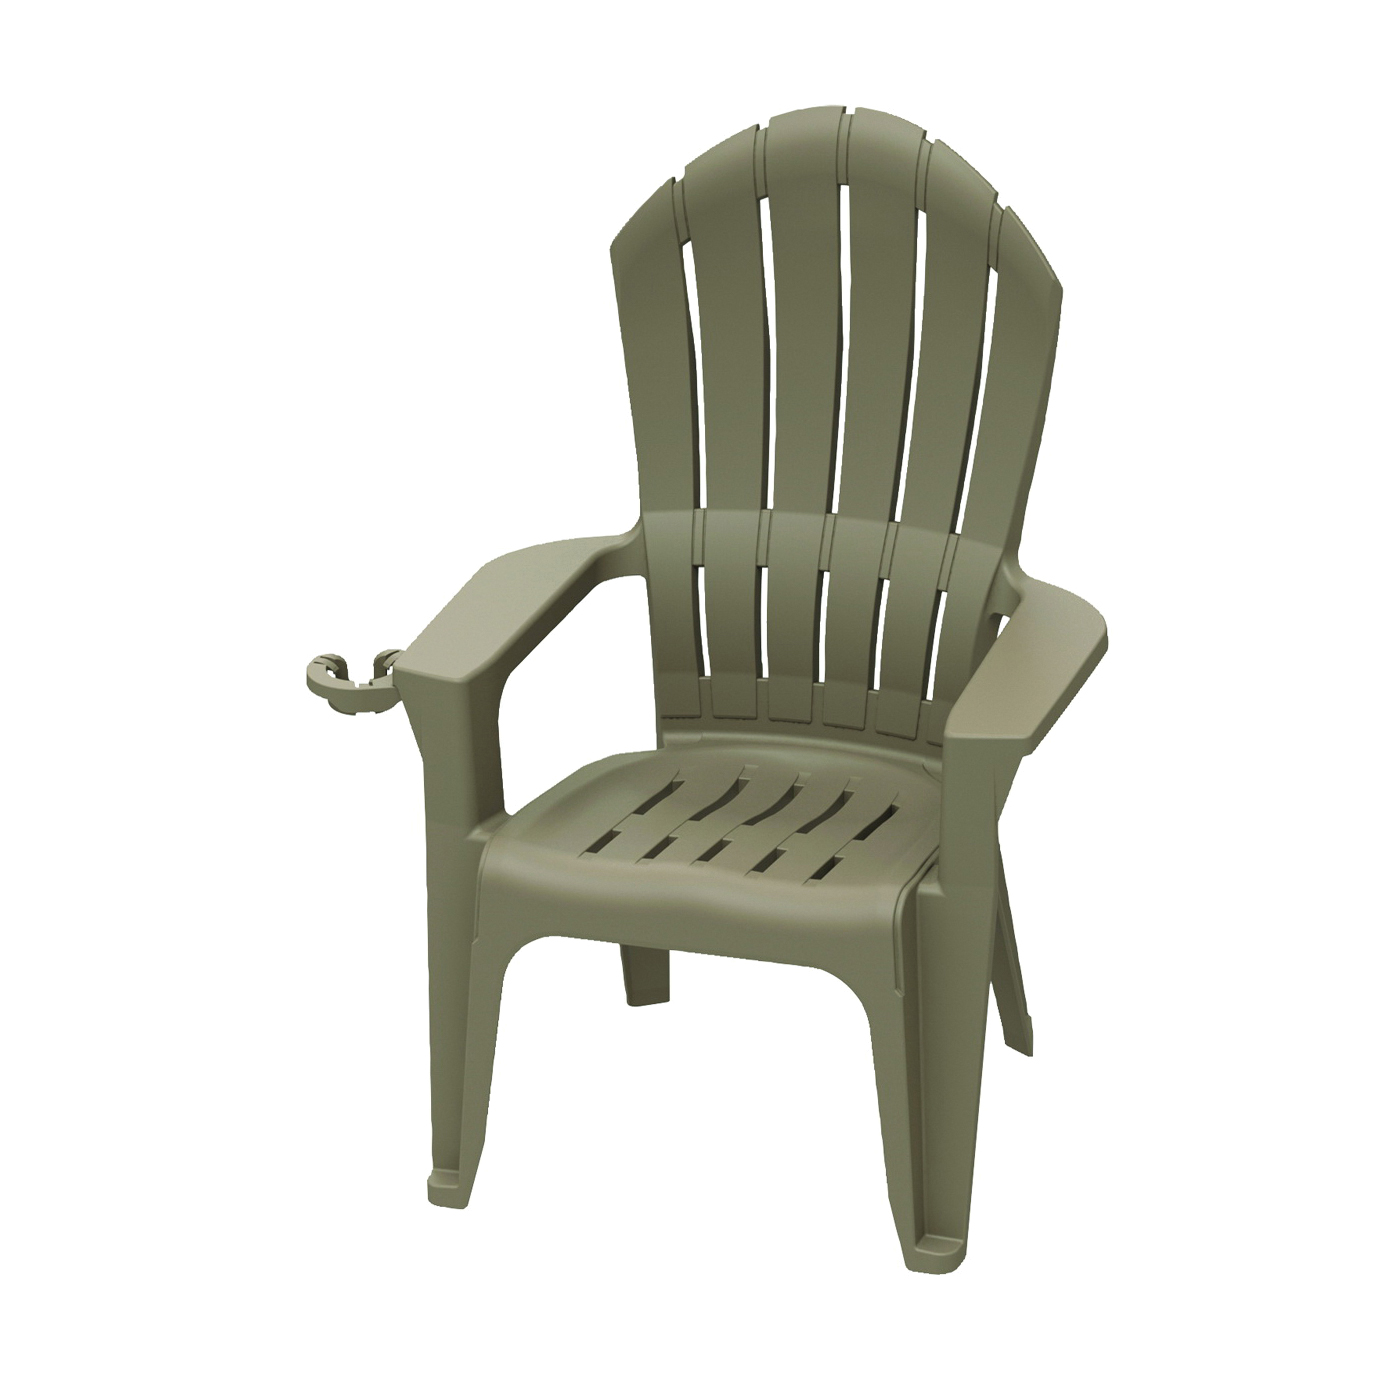 Picture of Adams Big Easy 8390-96-3700 Adirondack Chair, 31.301 in W, 29.468 in D, 45.695 in H, Polypropylene Frame